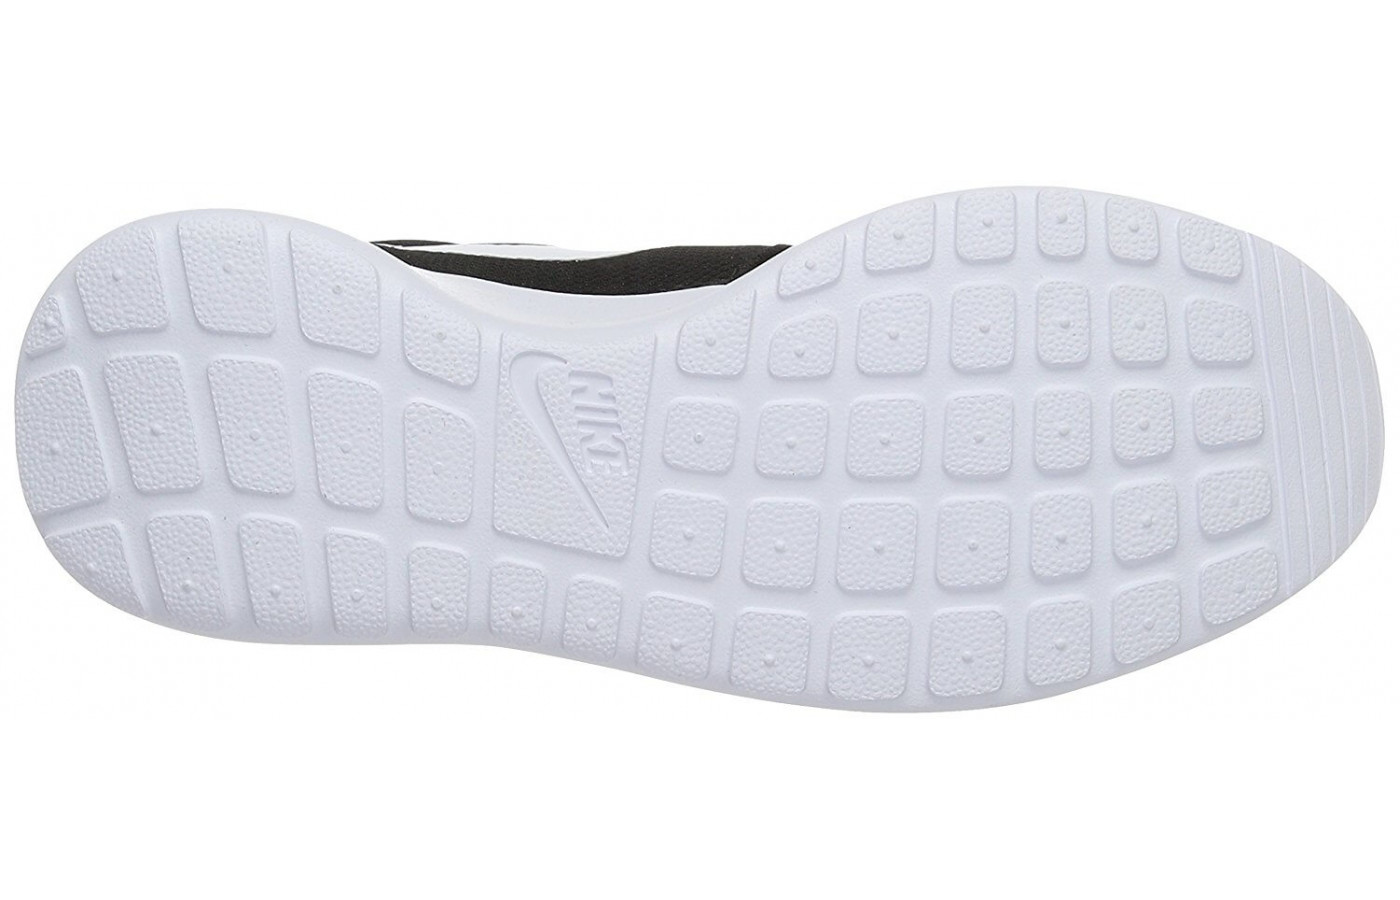 separation shoes 744fb 1403b The bottom portion of the Nike Roshe One.